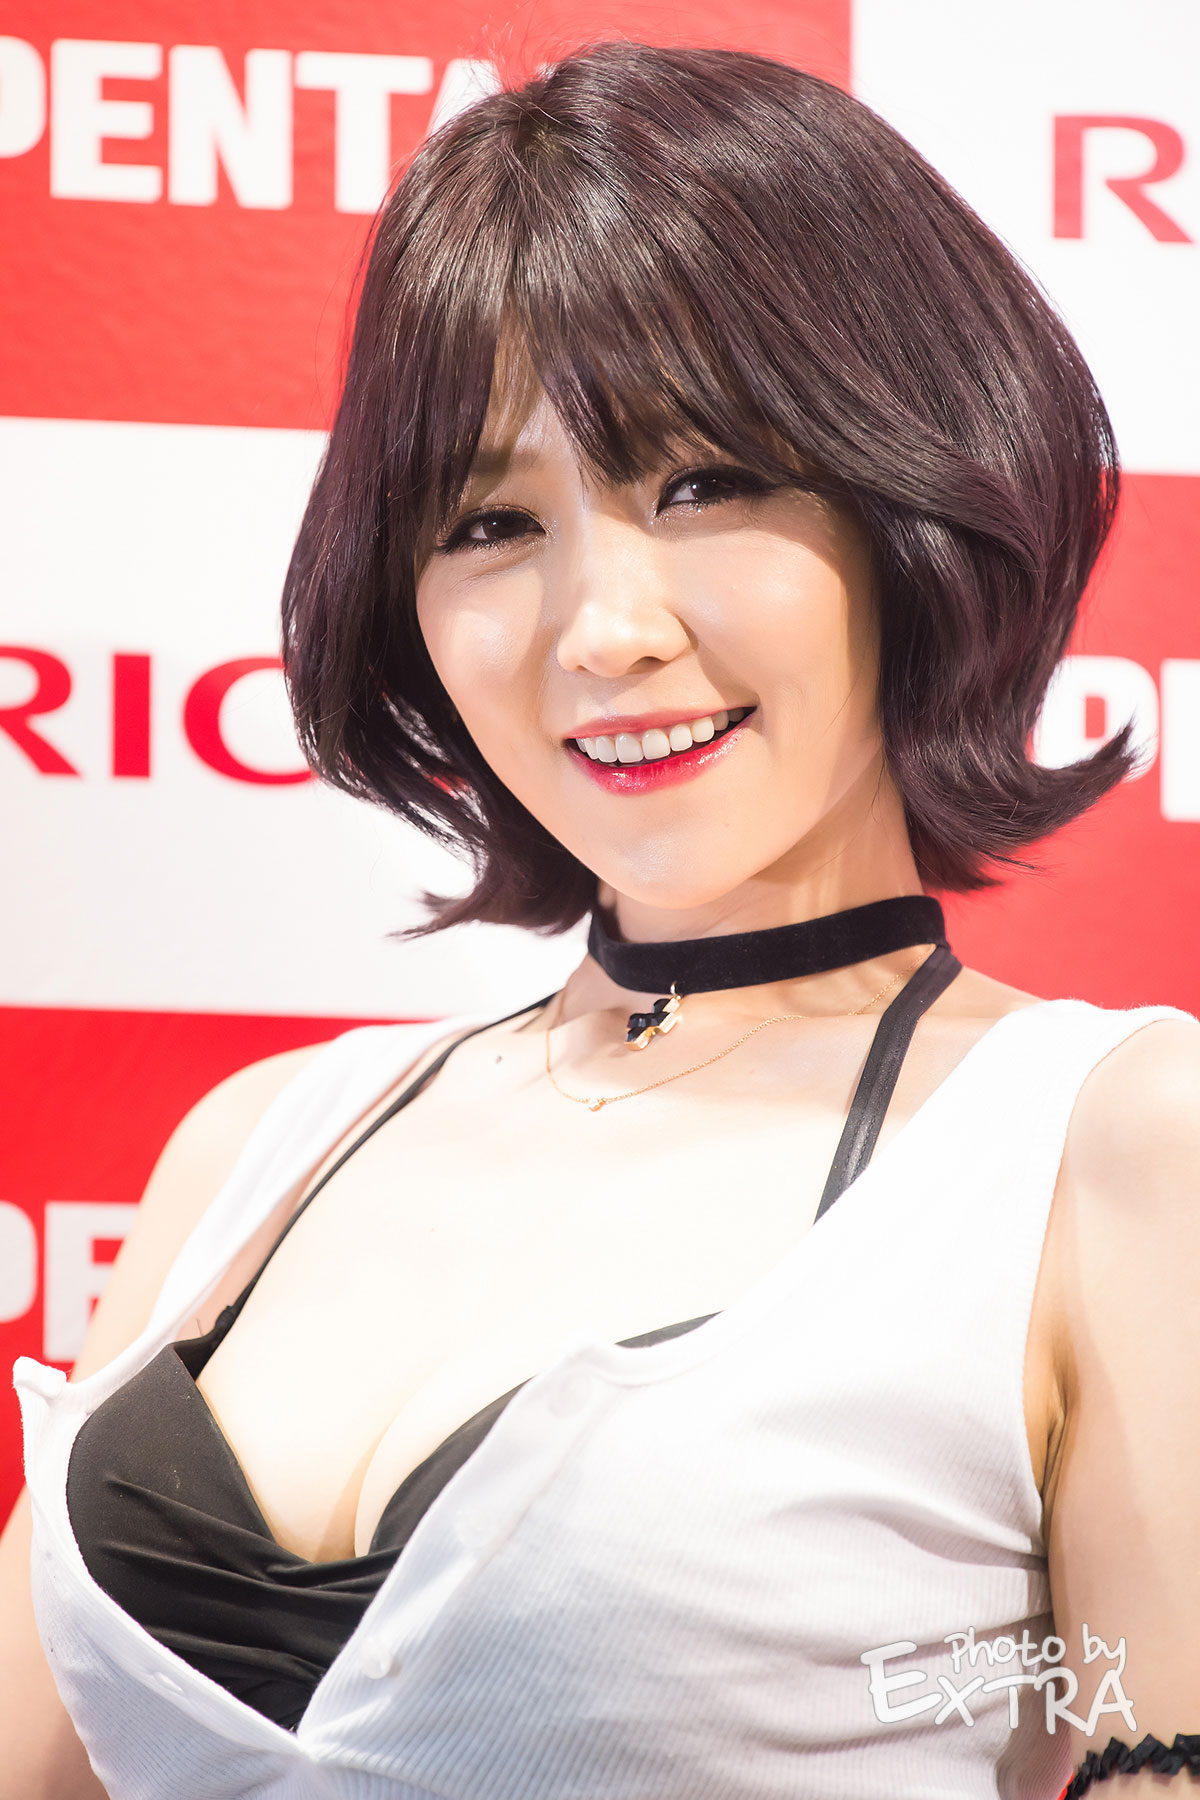 Lee Eun Hye Seoul Photo Imaging Show 2015 Pentax